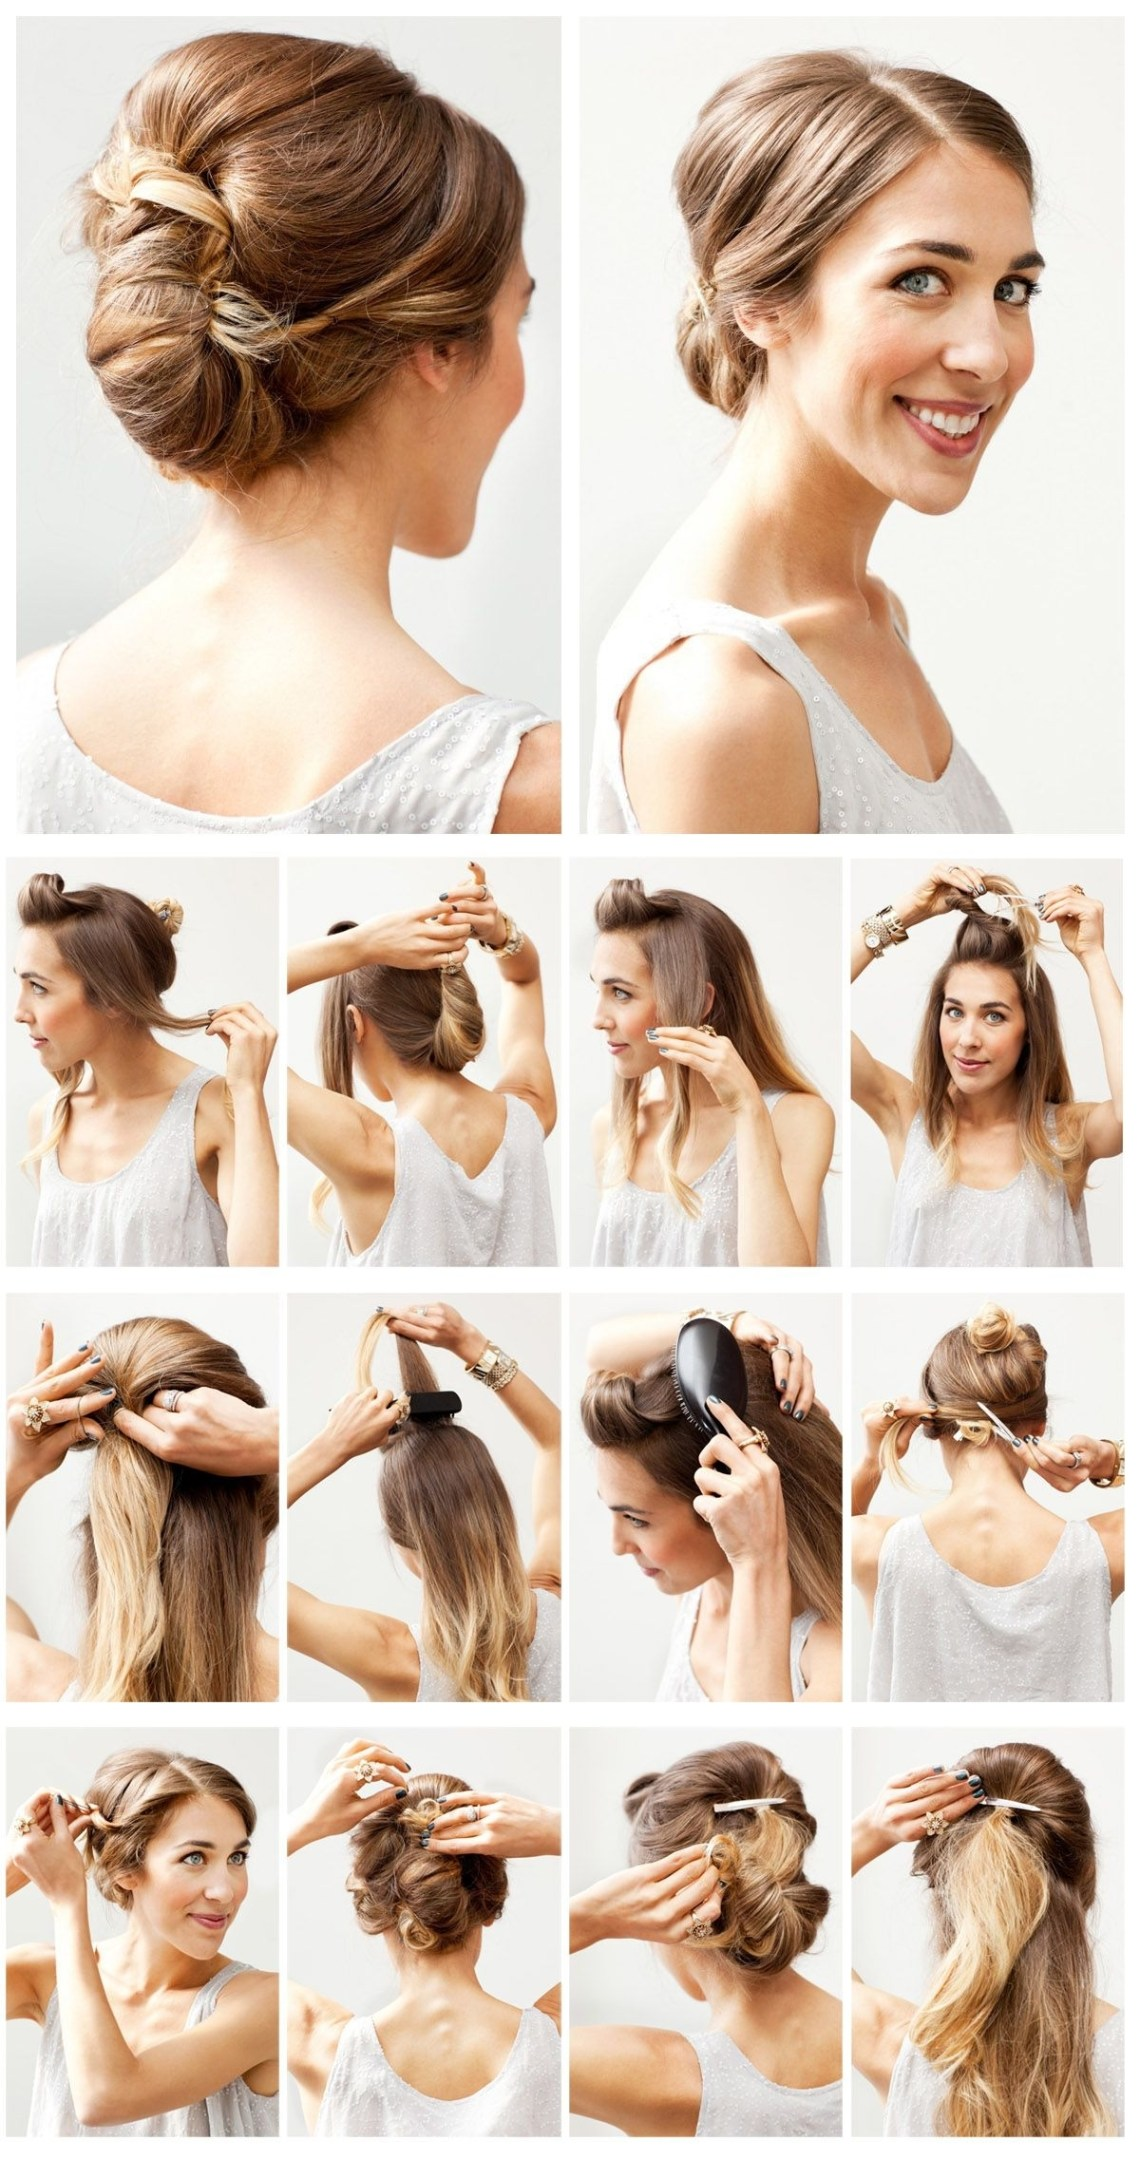 12 Hottest Wedding Hairstyles Tutorials For Brides And 10+ Adorable Put Up Hairstyles For Medium Length Hair